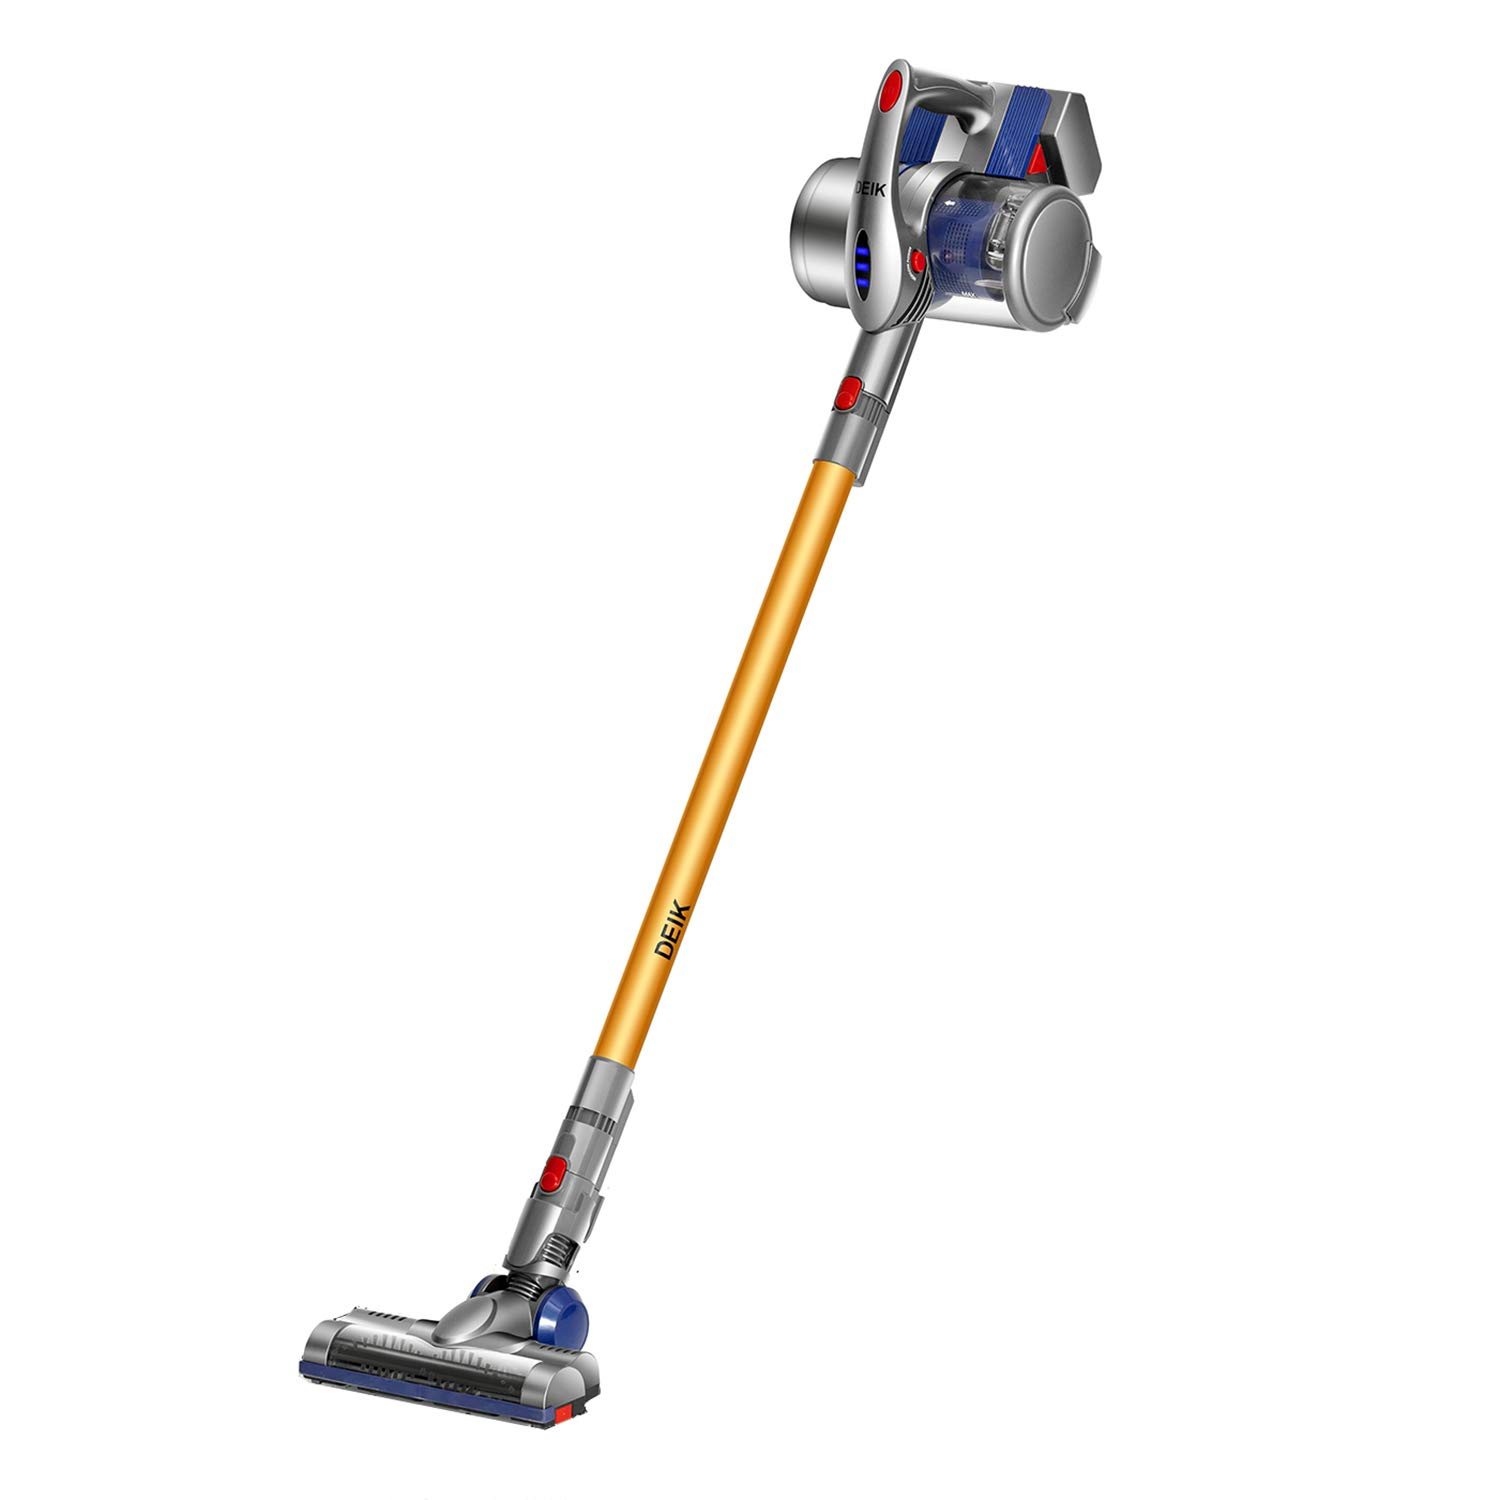 Deik 2 in 1 Cordless Vacuum with Wall-Mount VC1606